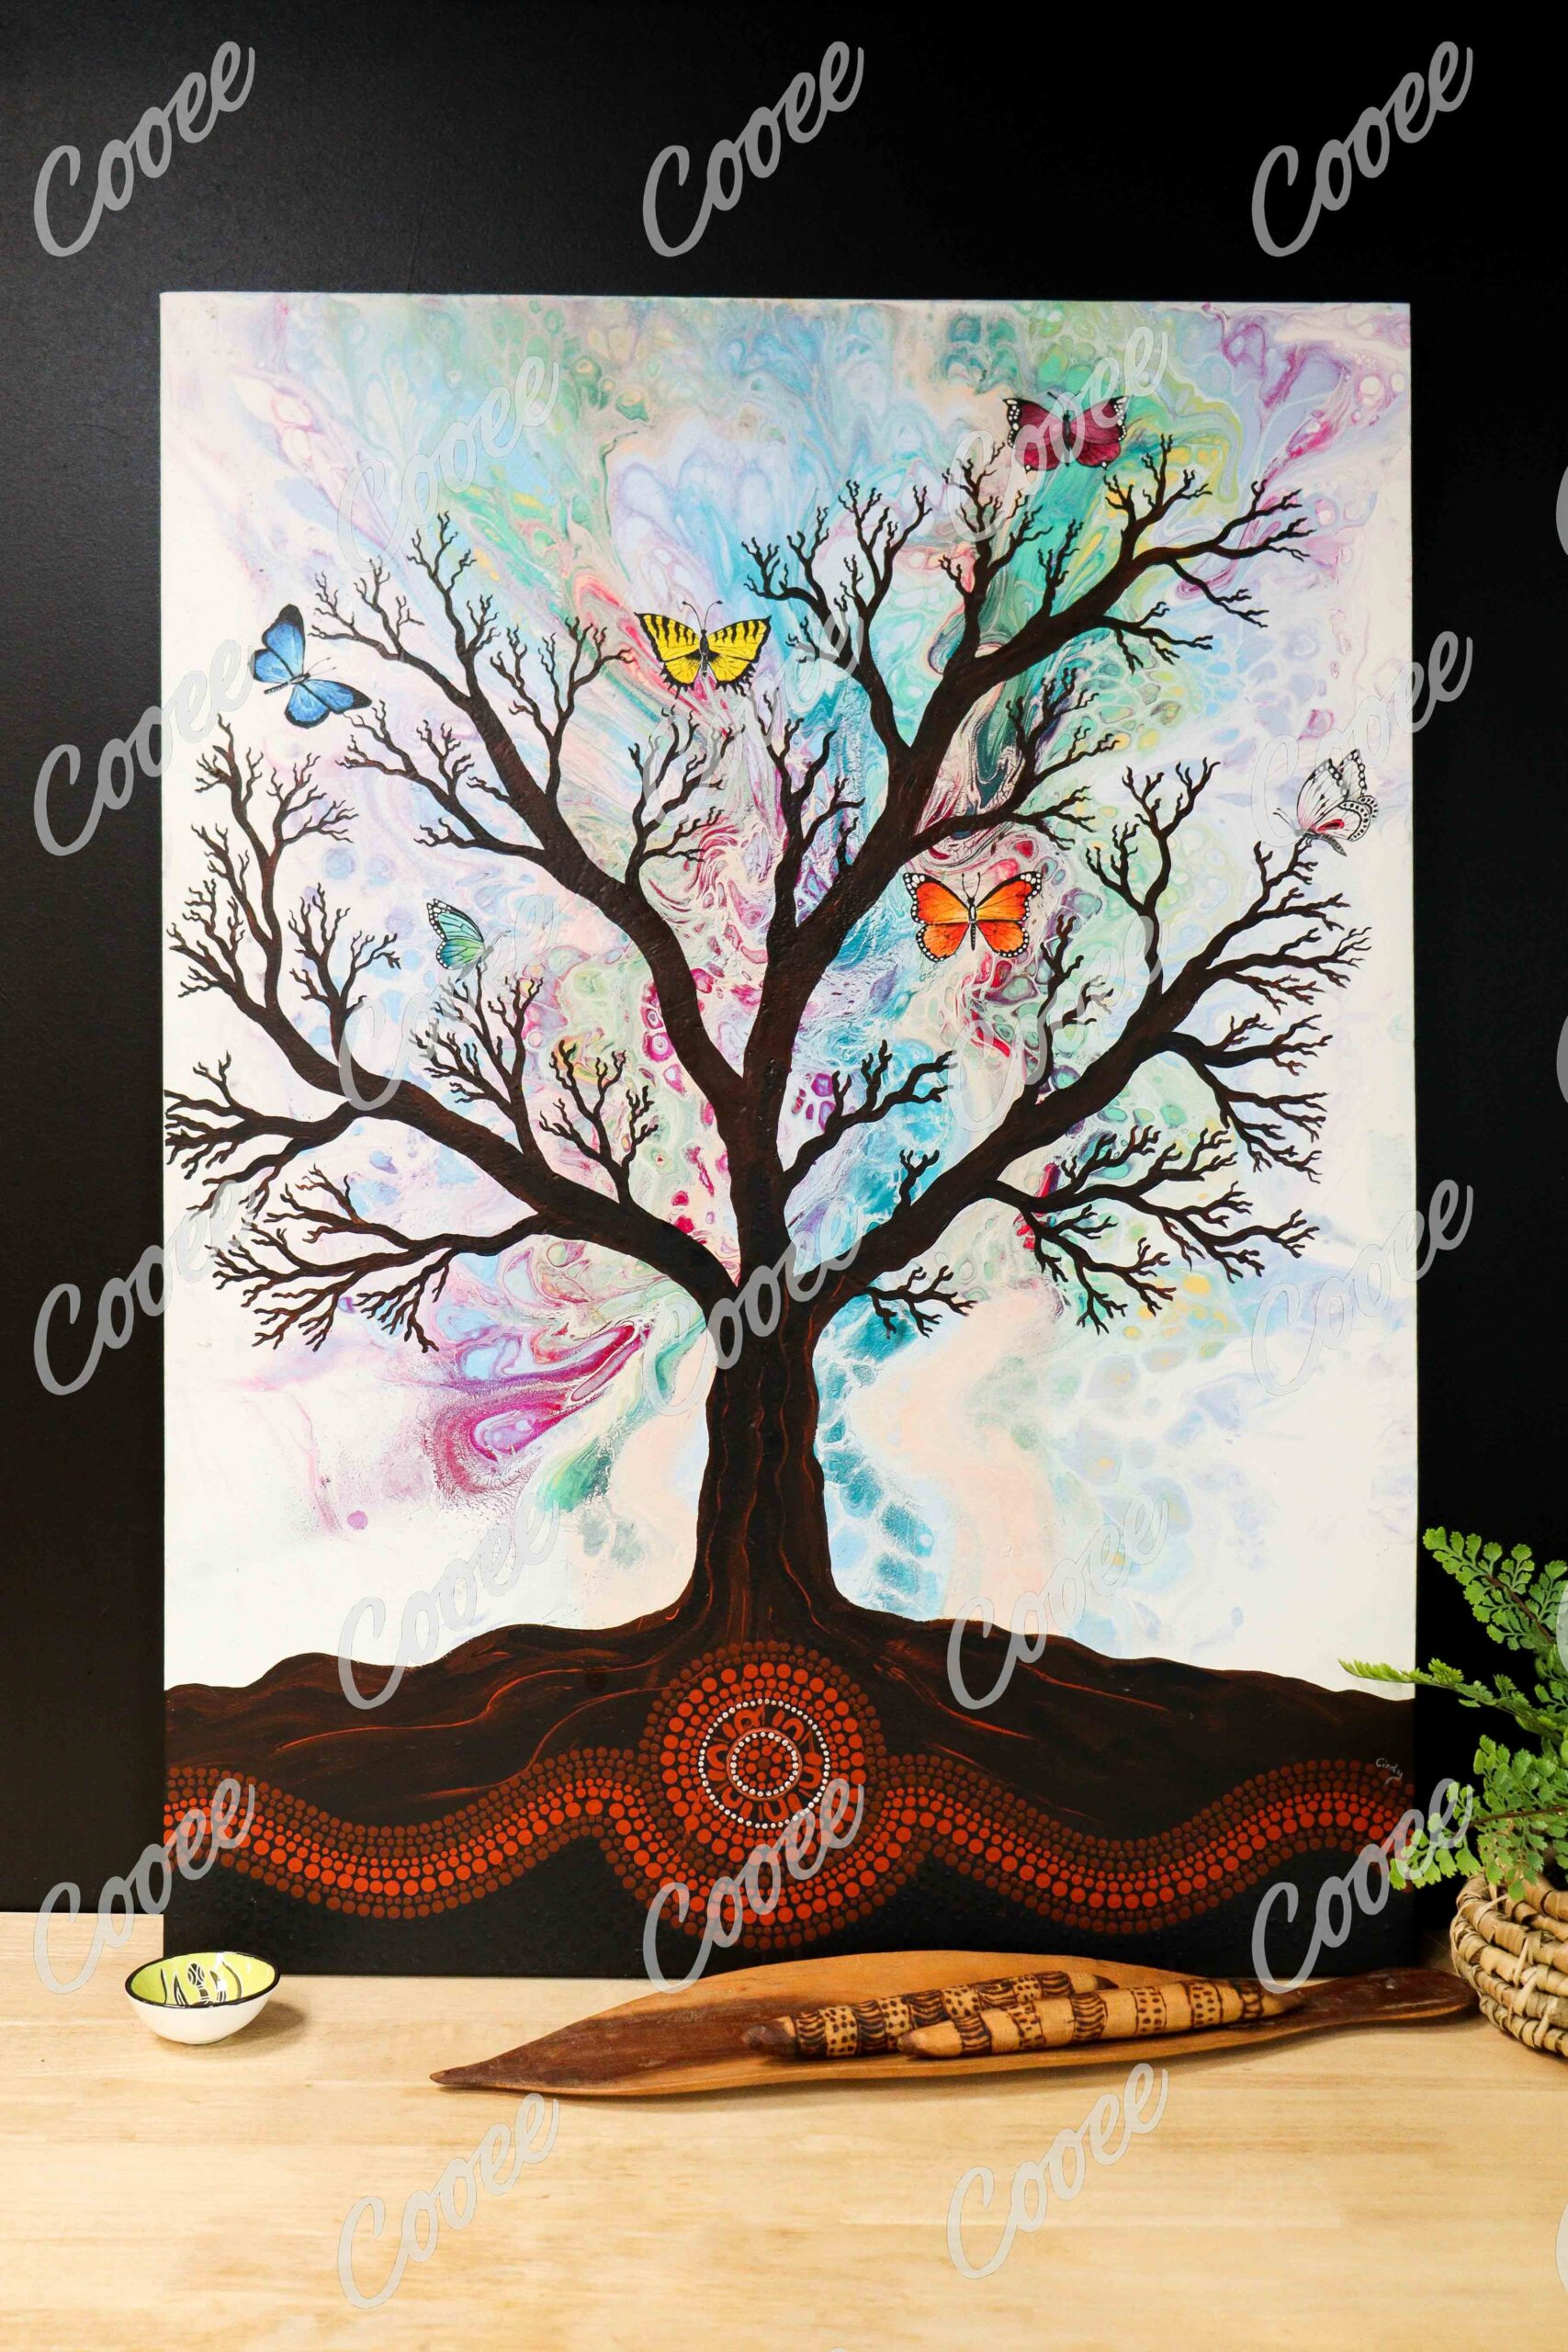 Cooee-Cafe-Original-Indigenous-Painting18